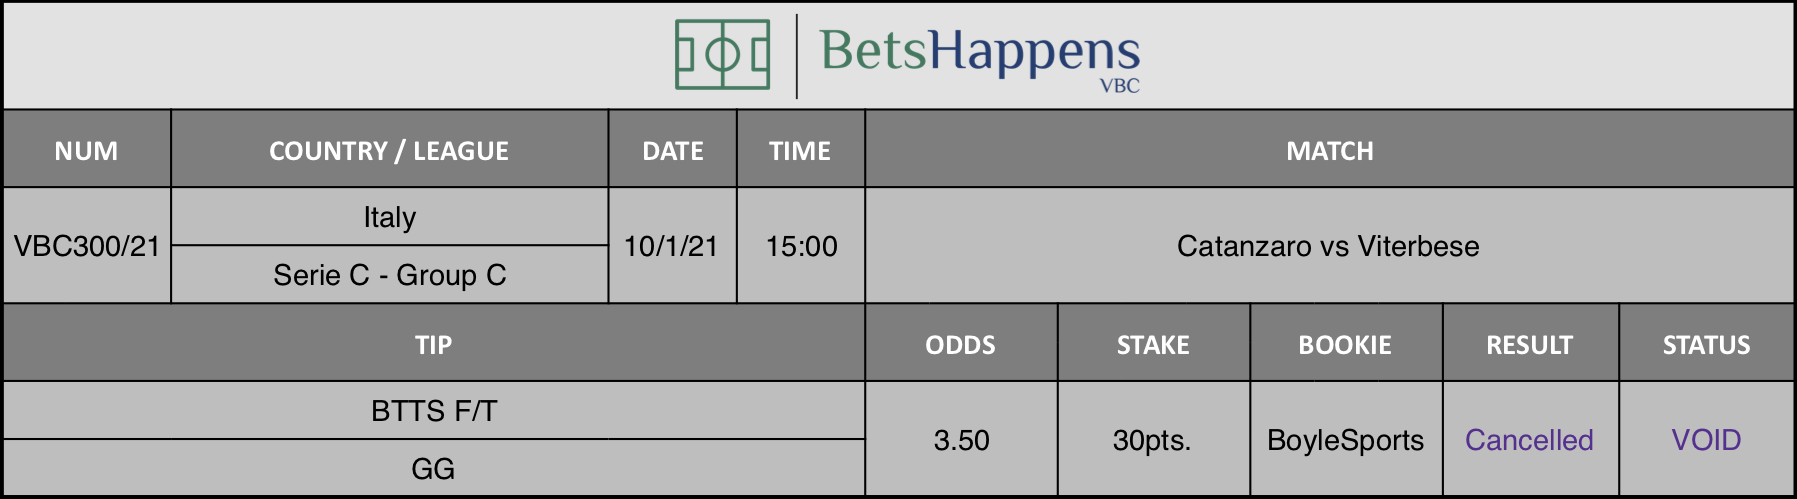 Results of our tip for the Catanzaro vs Viterbese  match where BTTS F/T  GG is recommended.